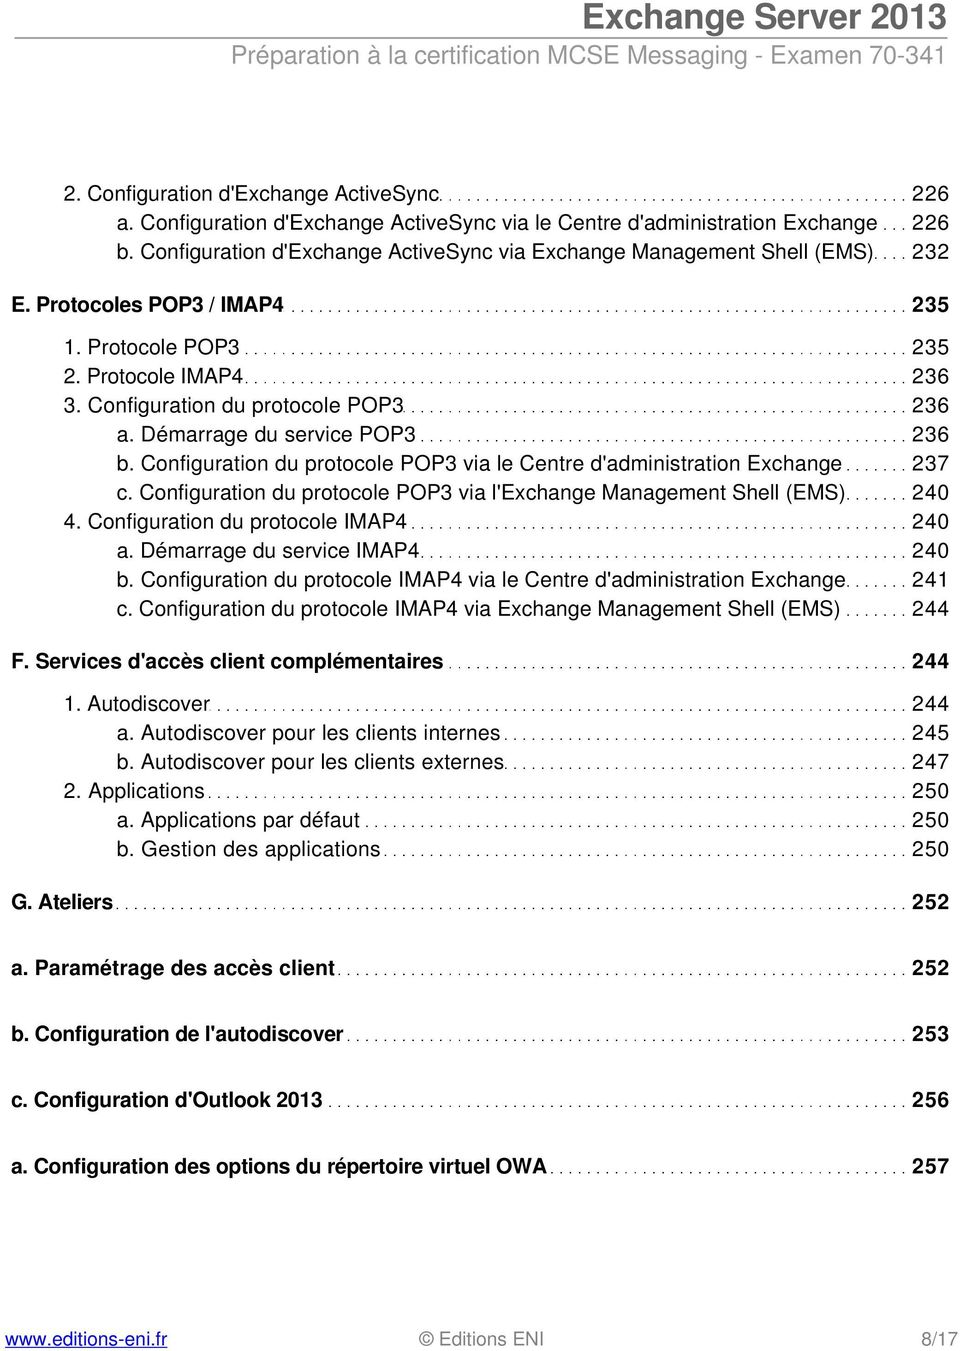 Démarrage du service POP3 236 b. Configuration du protocole POP3 via le Centre d'administration Exchange 237 c. Configuration du protocole POP3 via l'exchange Management Shell (EMS) 240 4.